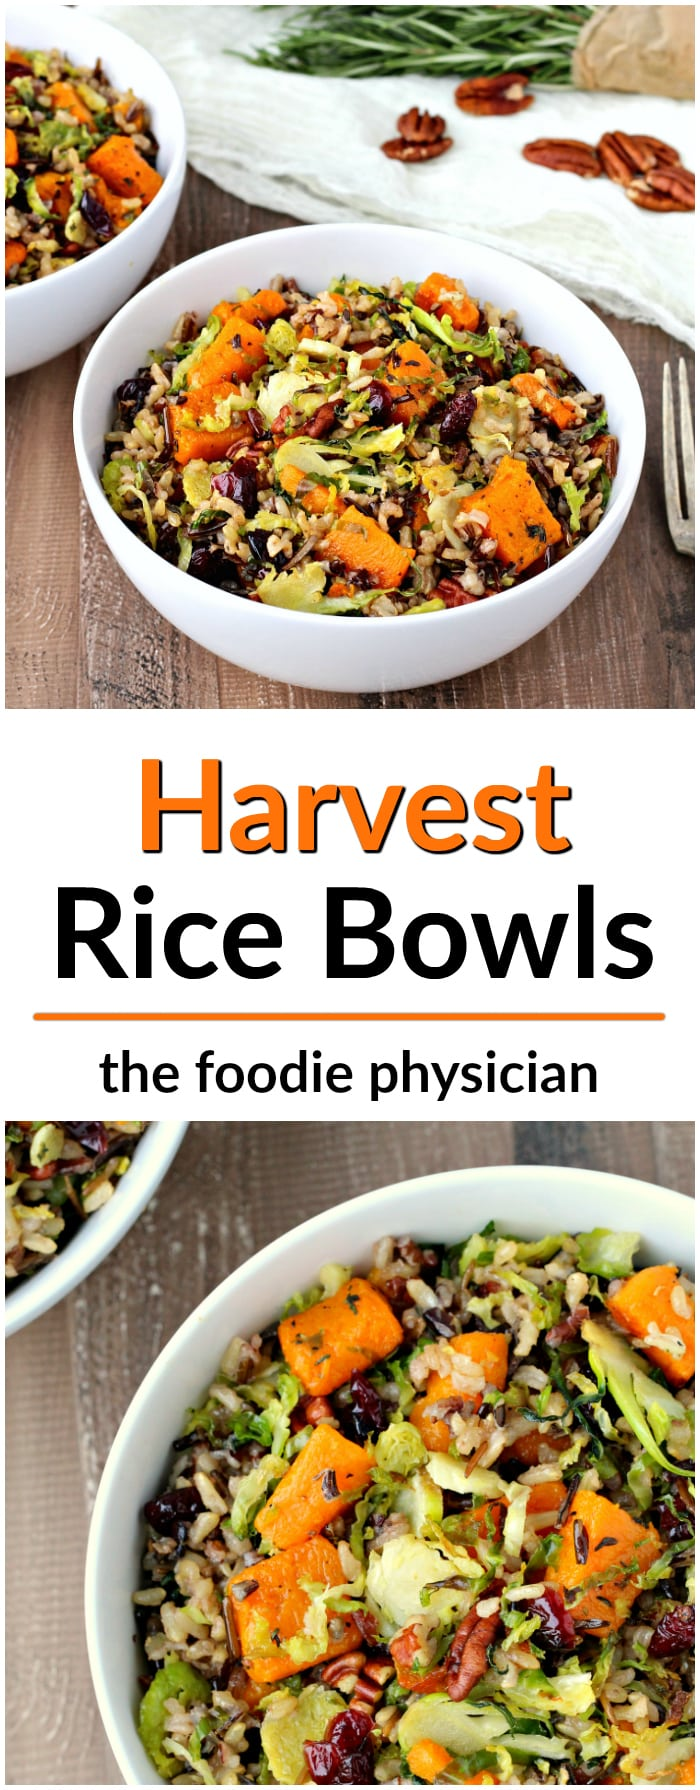 Harvest Rice Bowls- whole grains bowls that are packed with fresh flavor and nutritious ingredients! | @foodiephysician